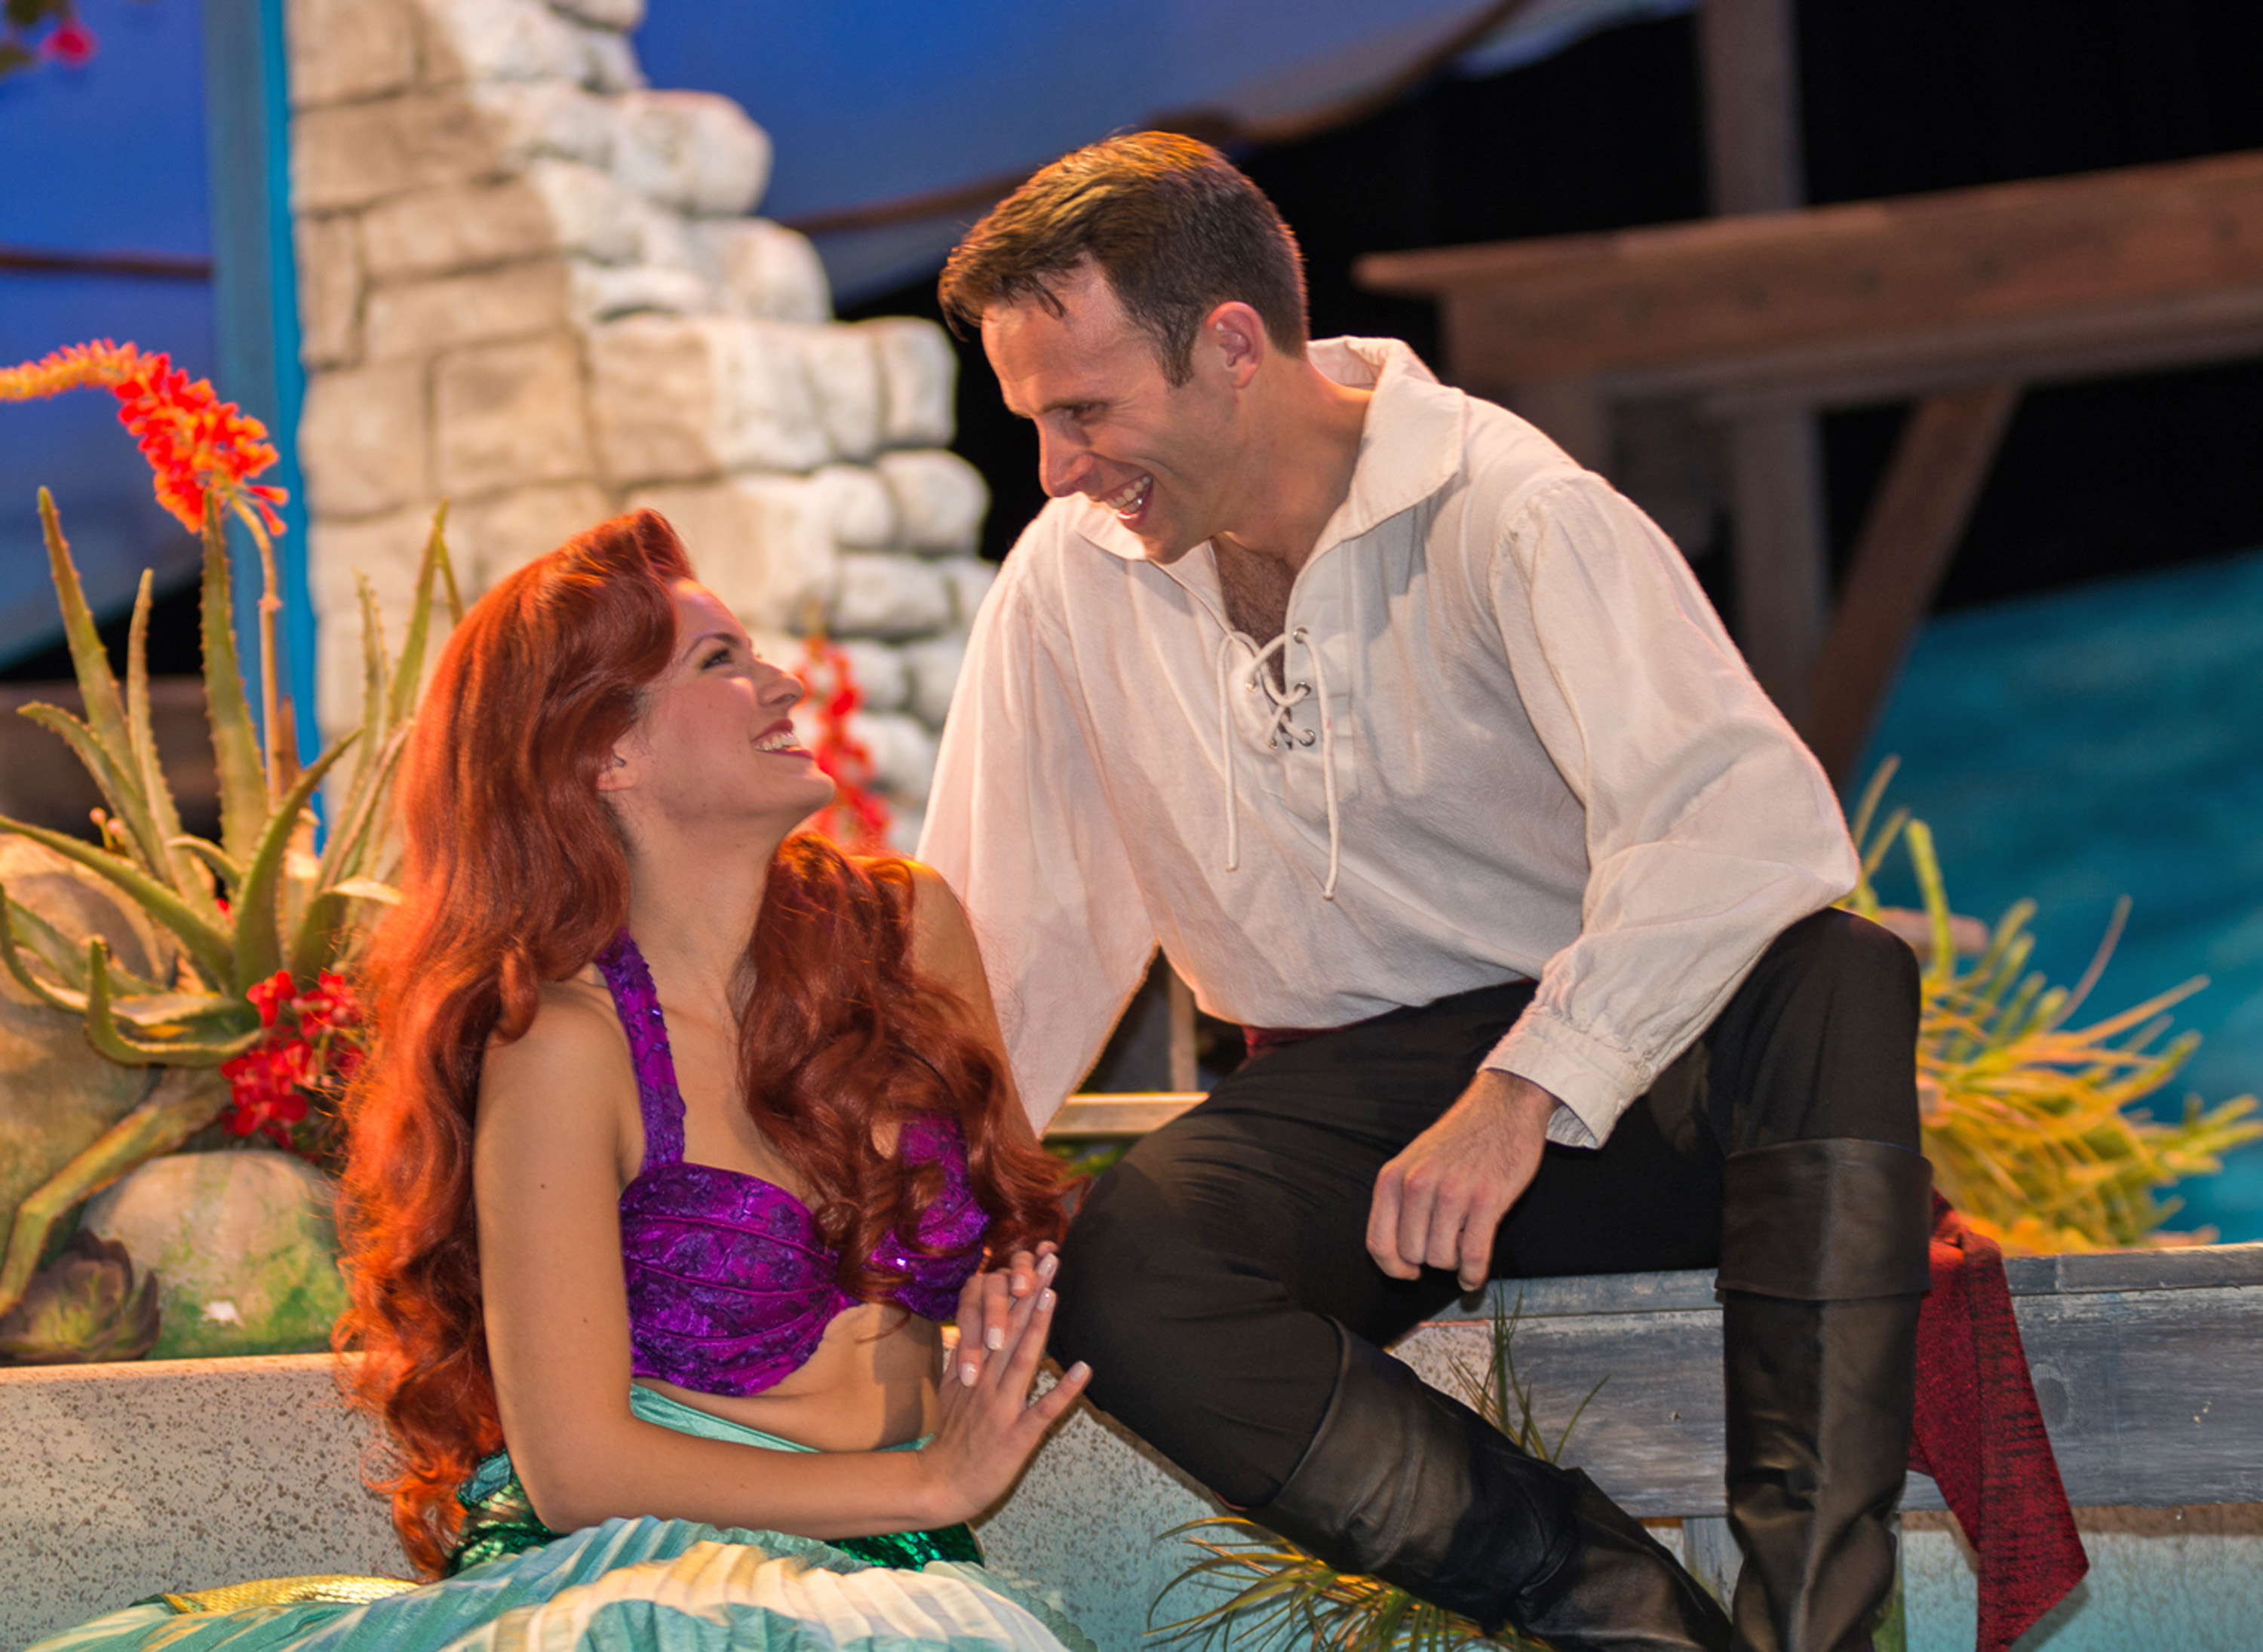 The Little Mermaid - OPENING WEEKEND!